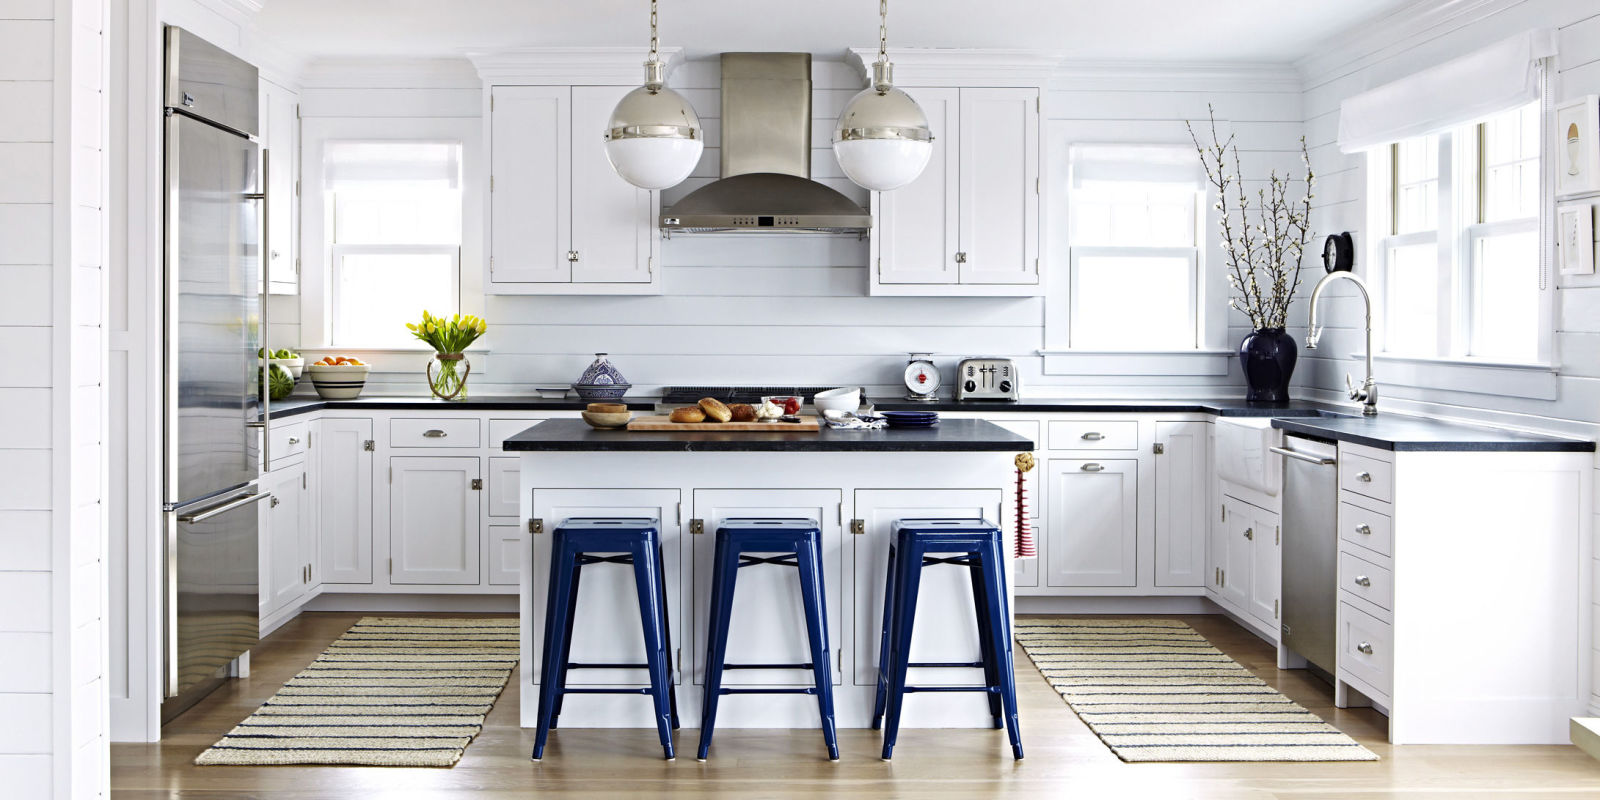 40+ Best Kitchen Ideas - Decor and Decorating Ideas for ... on Kitchen Decoration Ideas  id=63349